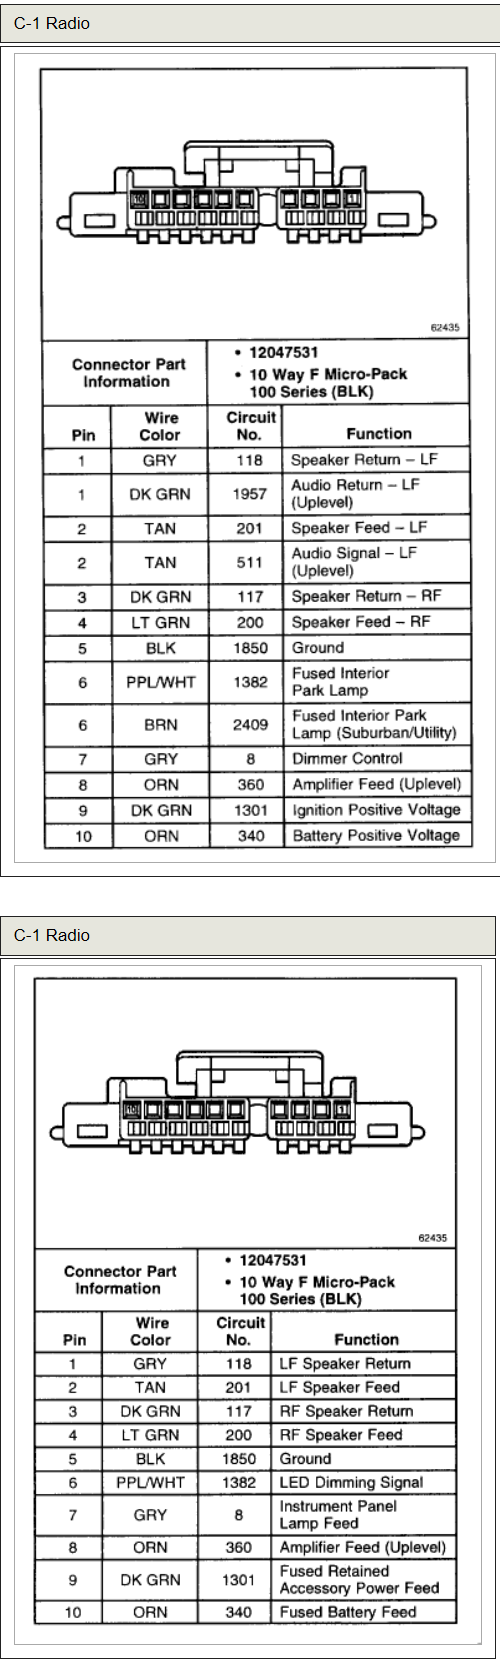 Chevrolet Car Radio Stereo Audio Wiring Diagram Autoradio Connector Volvo Cd Changer Wire Installation Schematic Schema Esquema De Conexiones Anschlusskammern Konektor